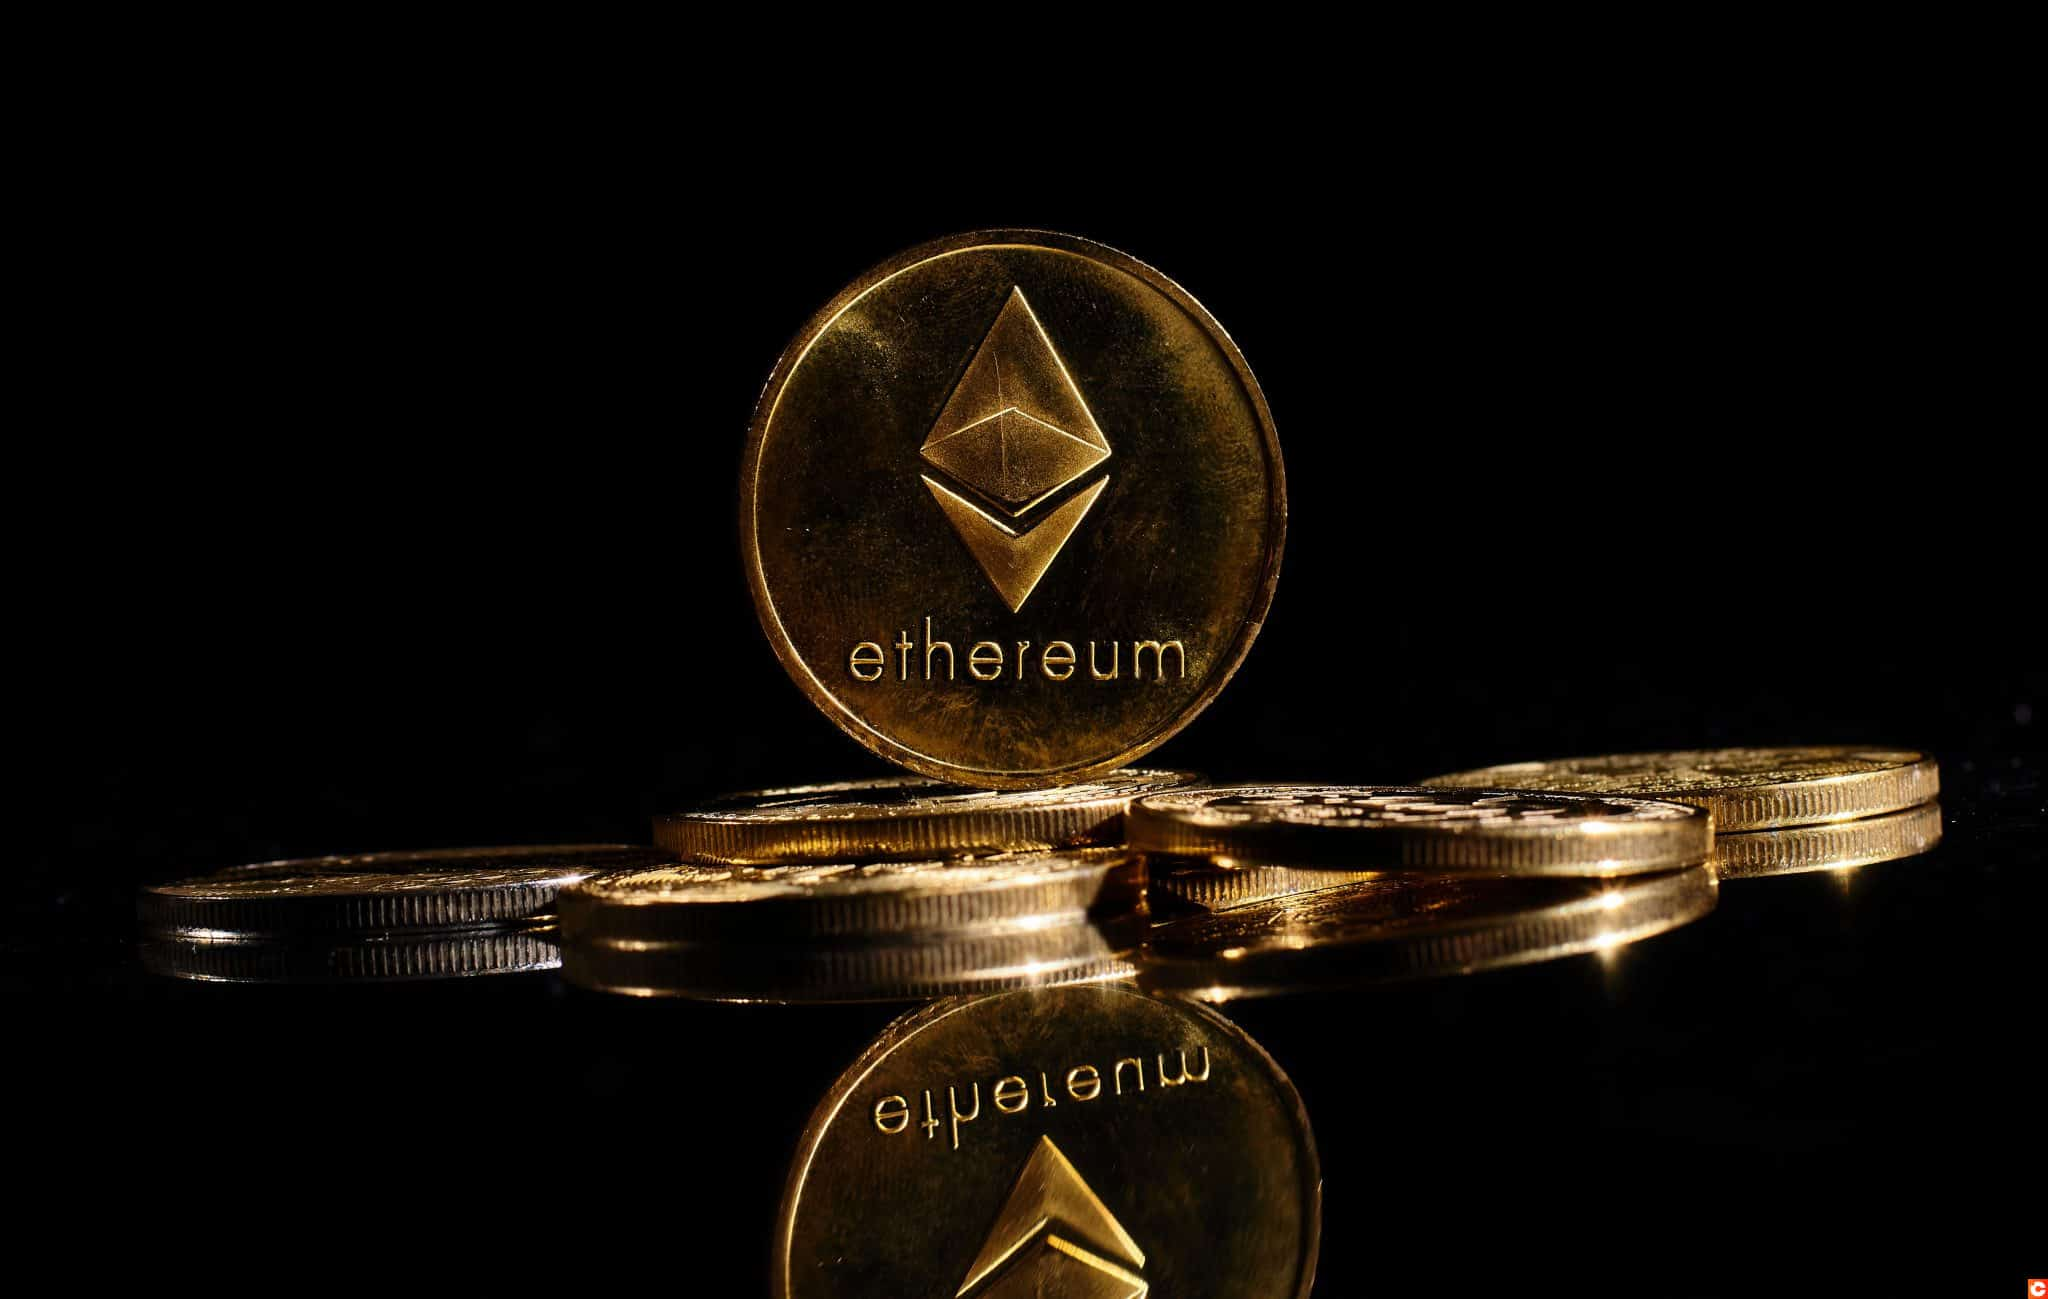 New cryptocurrency Ethereum ETH 2.0 on a top of bitcoin coins against black background. Closeup golden coin with Ether logo. A heap of decentralized digital currency. Crypto payment. Electronic money